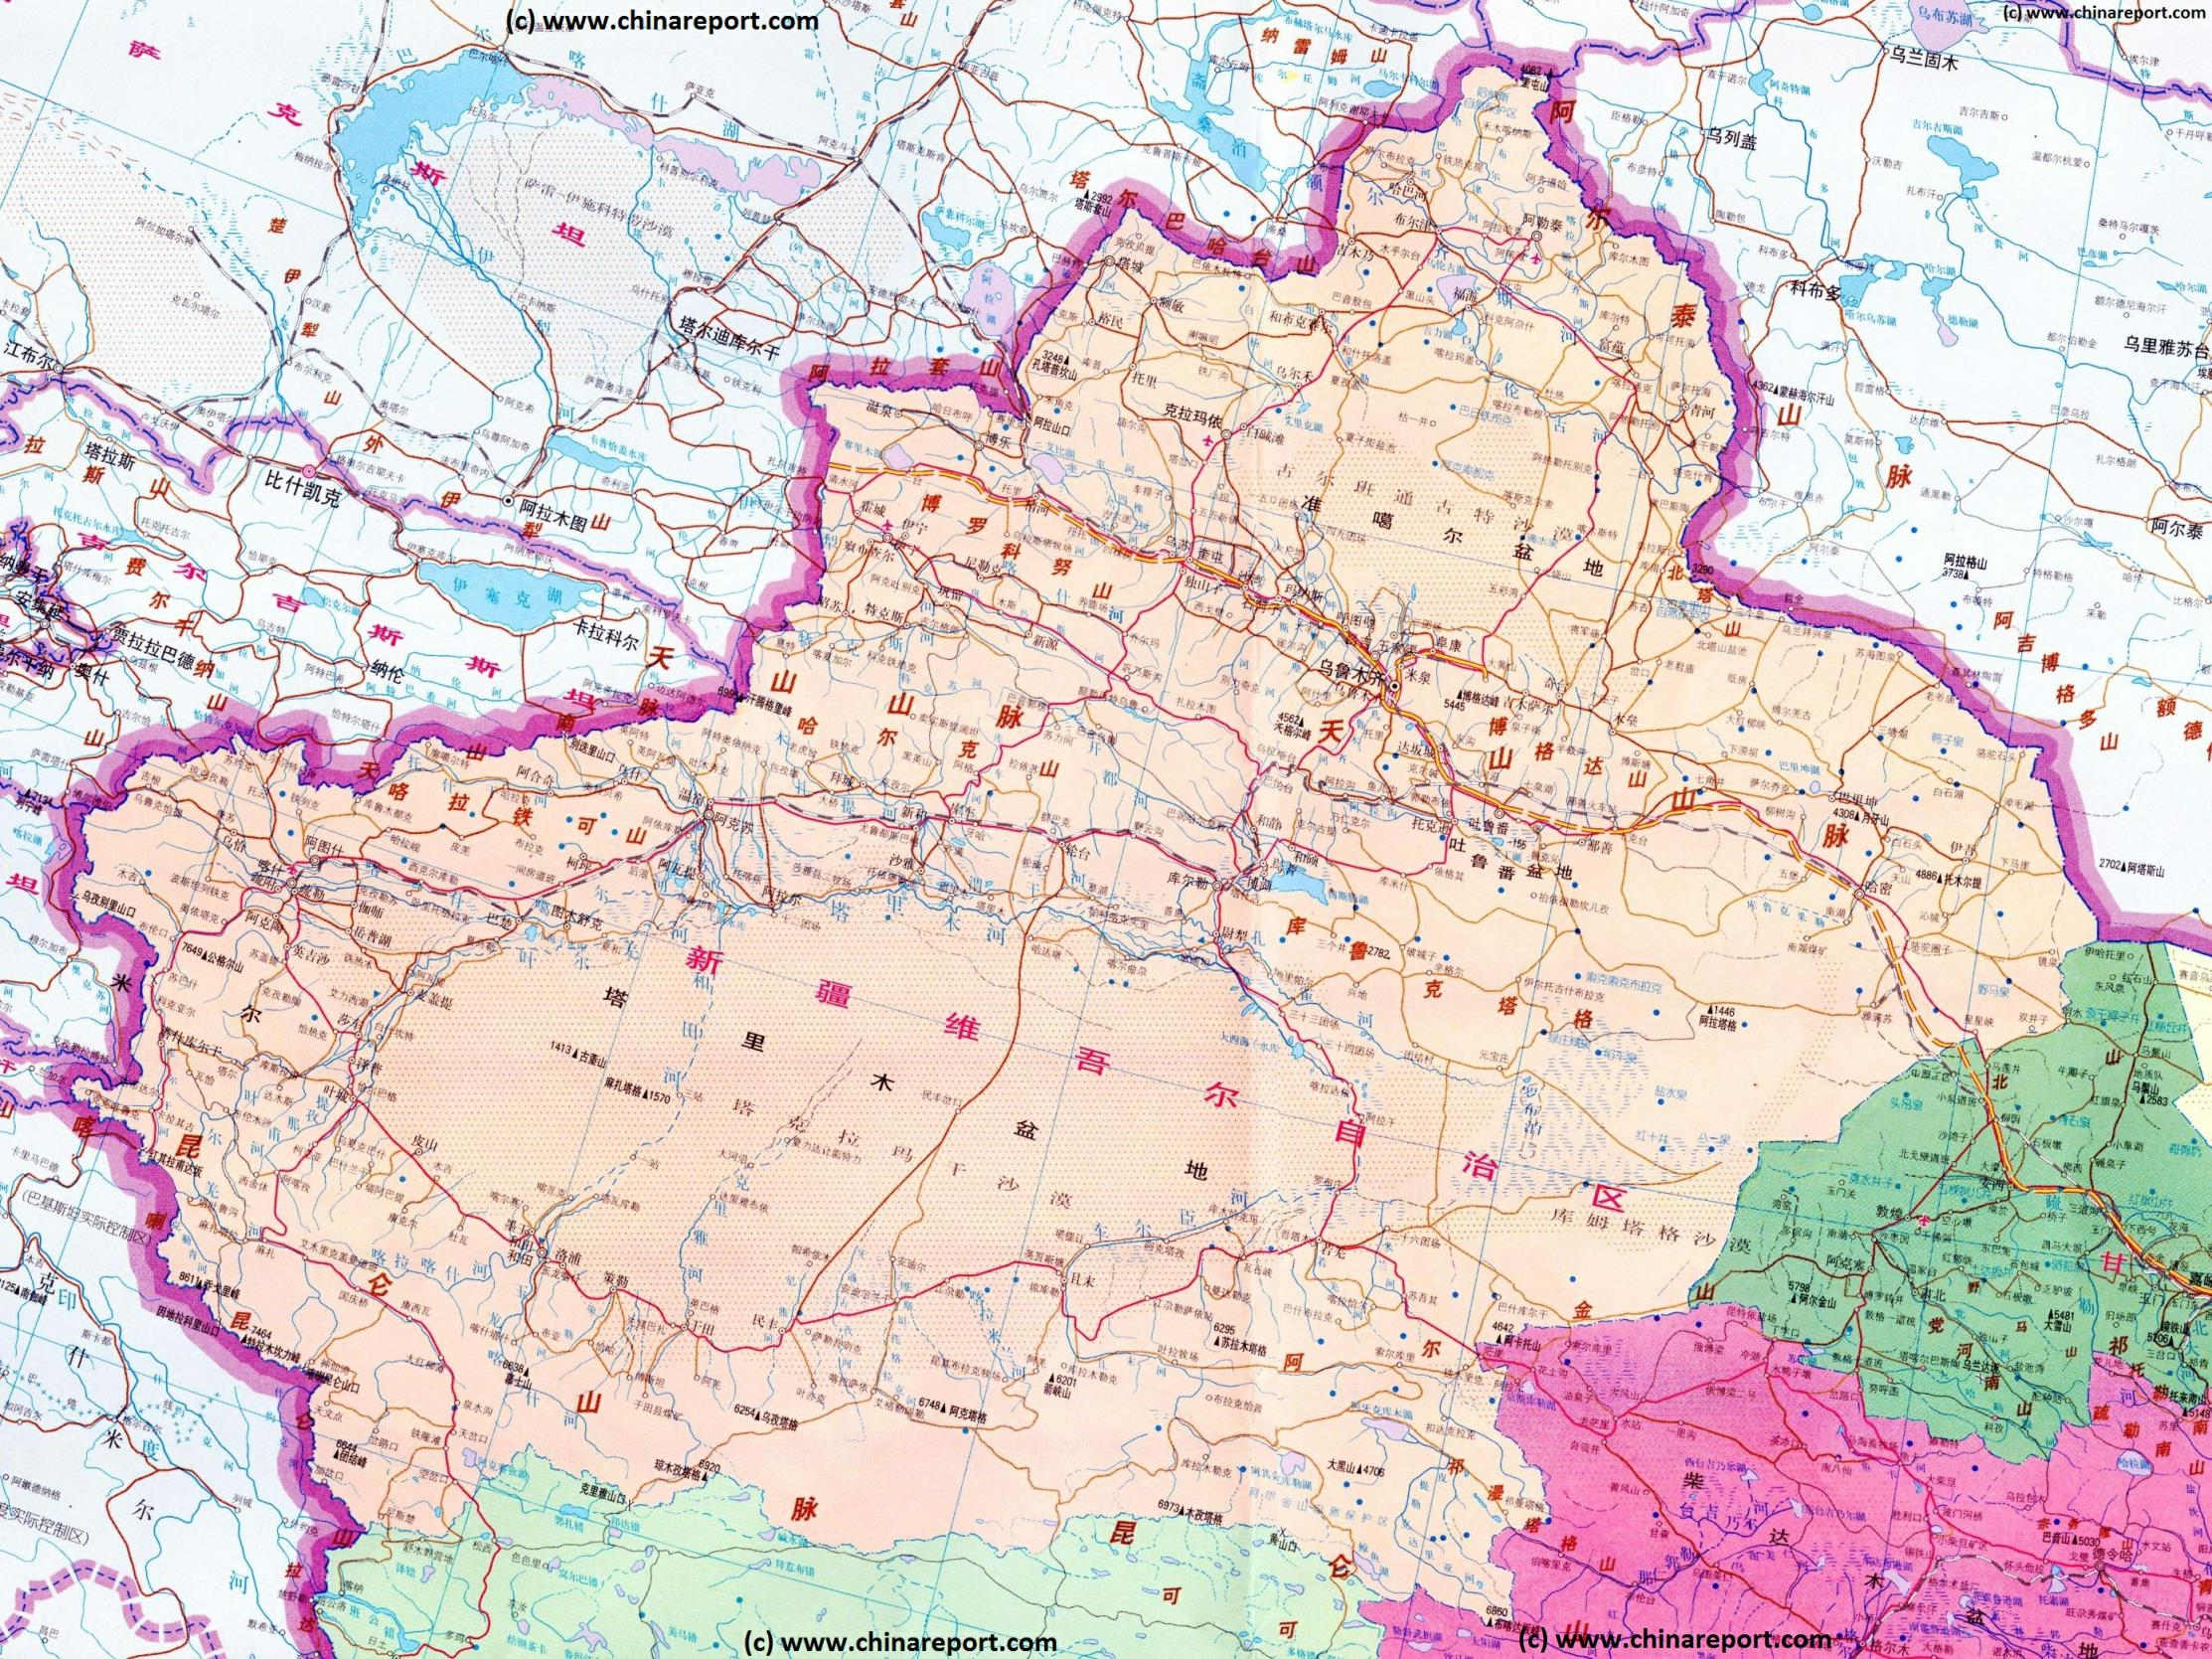 Map Xinjiang.Map West China Xinjiang Uyghur Ar Kasghar Region Karakoram